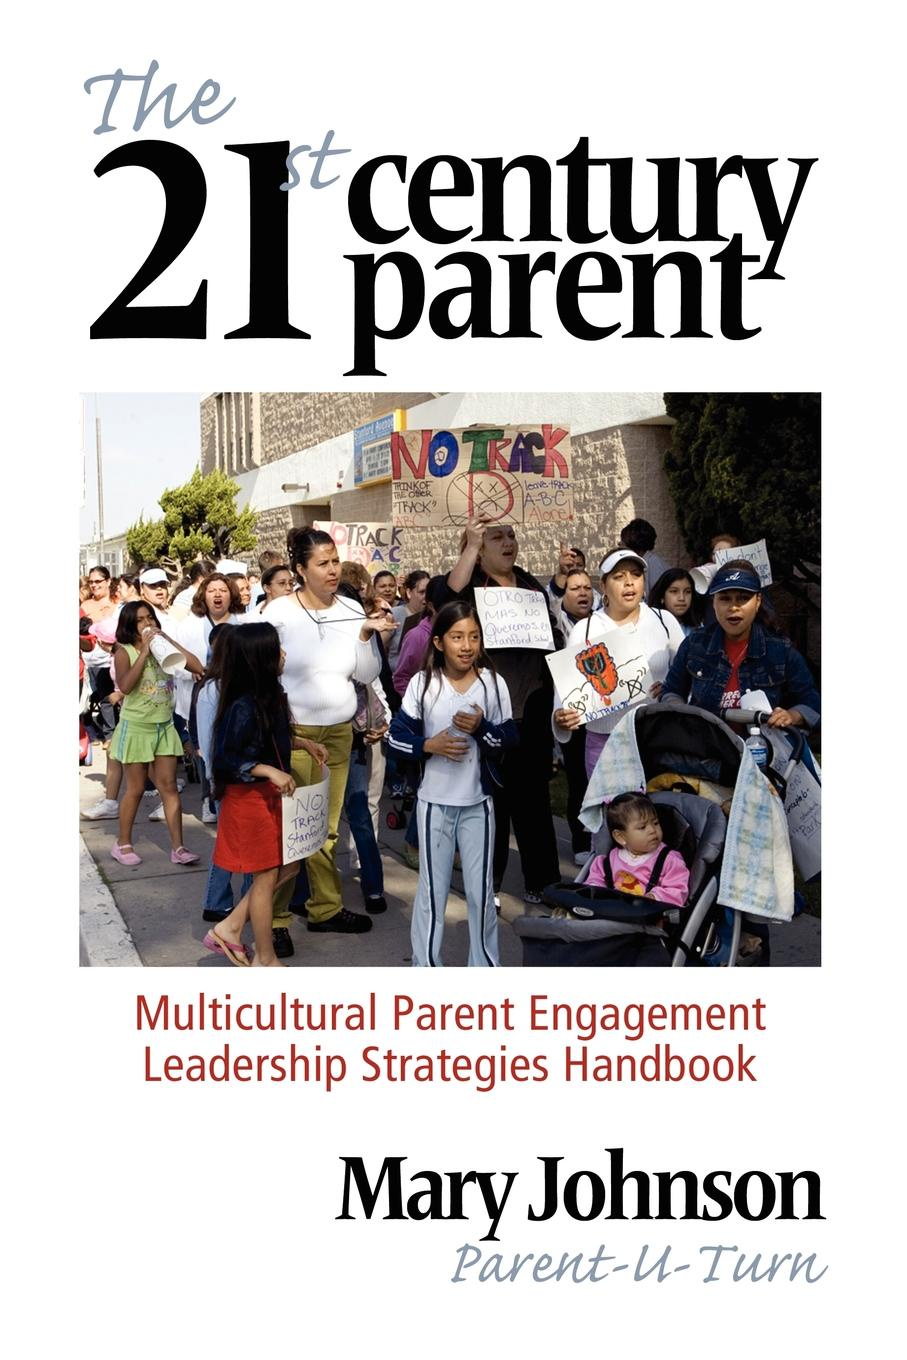 Mary Johnson The 21st Century Parent. Multicultural Parent Engagement Leadership Strategies Handbook bevan s brinkley i bajorek z cooper c 21st century workforces and workplaces the challenges and opportunities for future work practices and labour markets